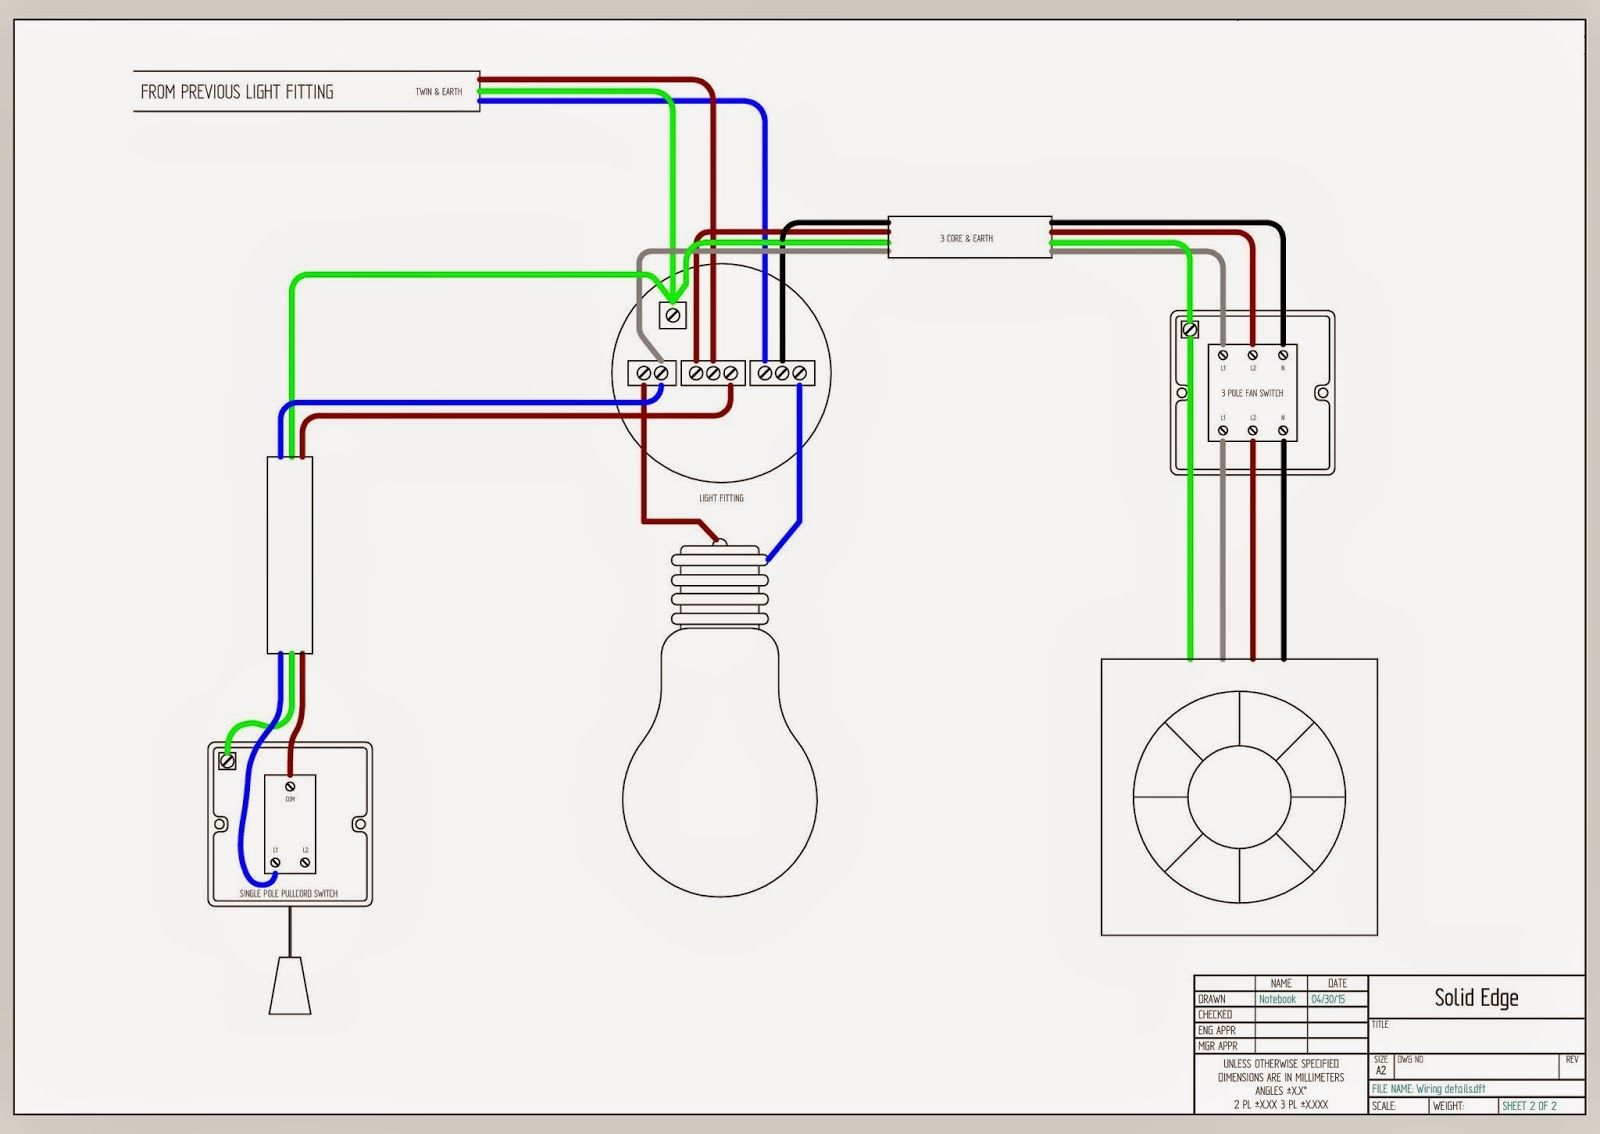 Greenheck fan control diagram wiring library bathroom exhaust fan with light wiring diagram bathroom exclusiv rh pinterest com greenheck exhaust hood greenheck fan corporation schofield wi swarovskicordoba Images